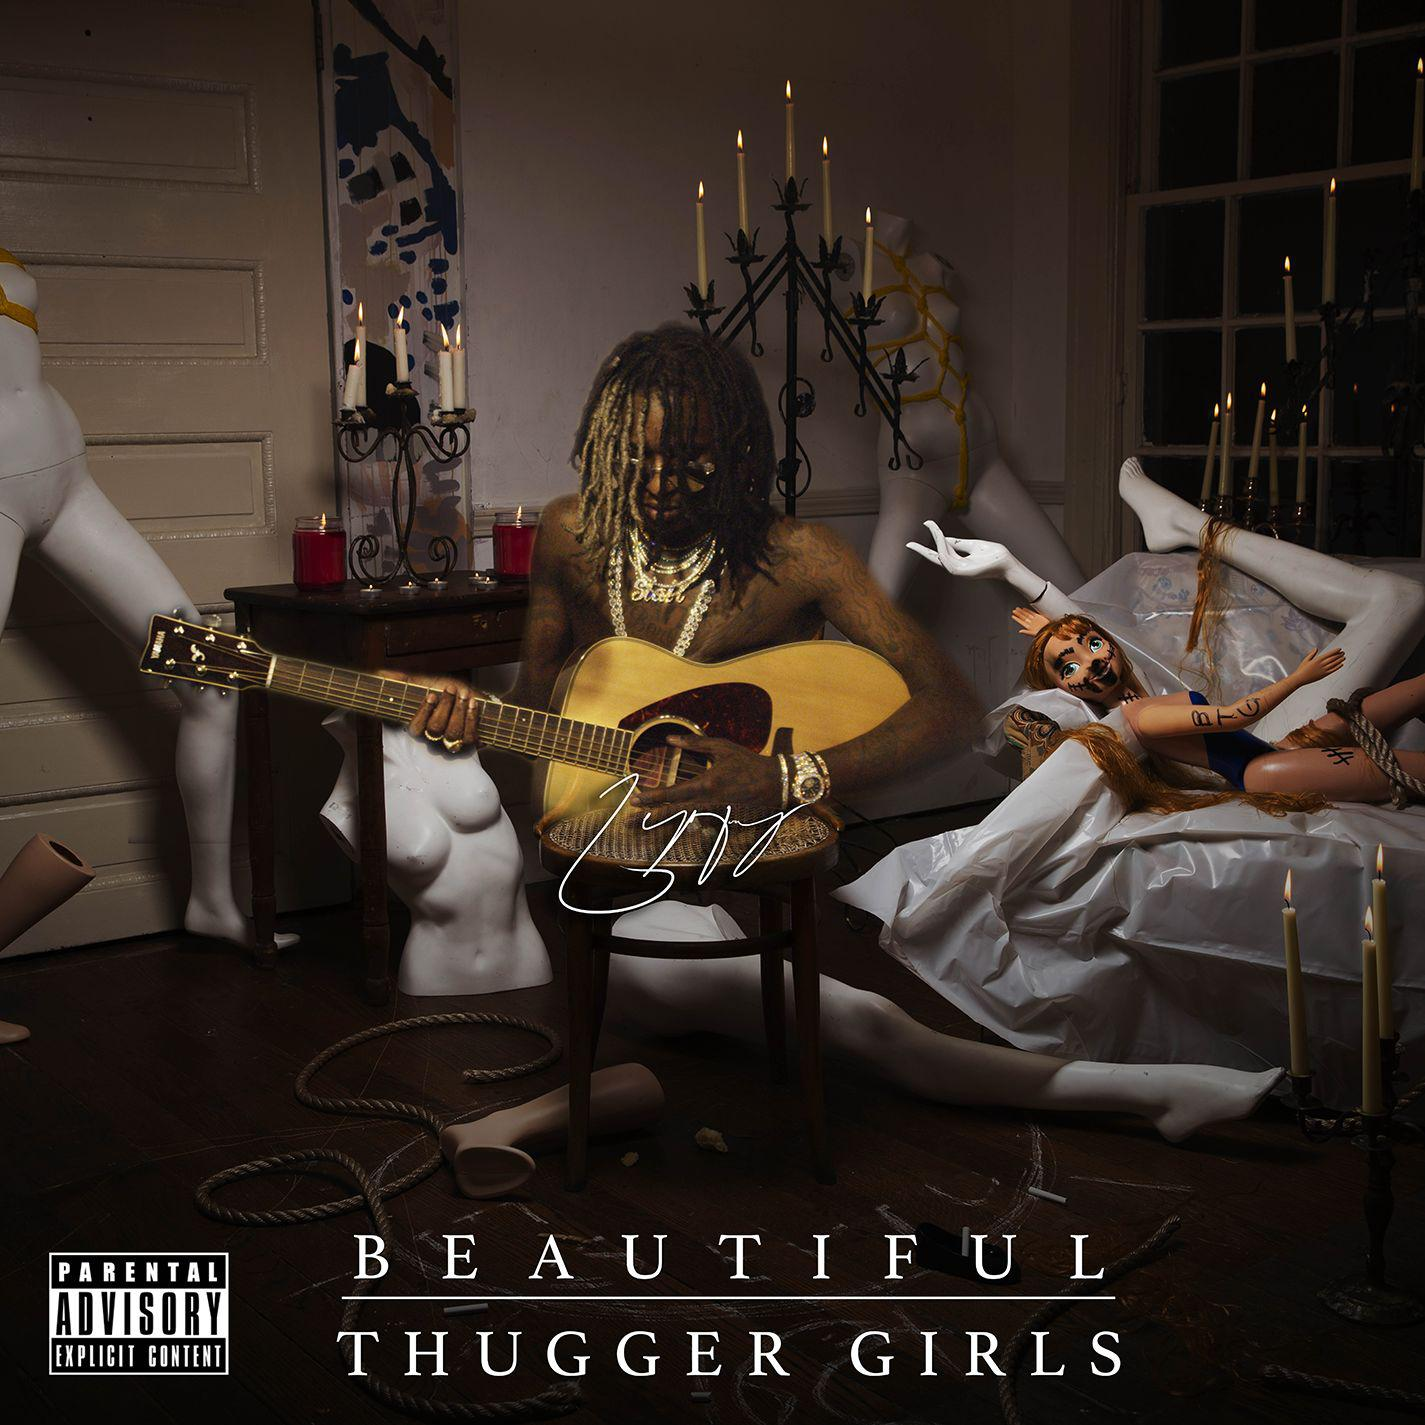 Young Thug - Relationship (Ft. Future) Alt Mumble Trap R&B?